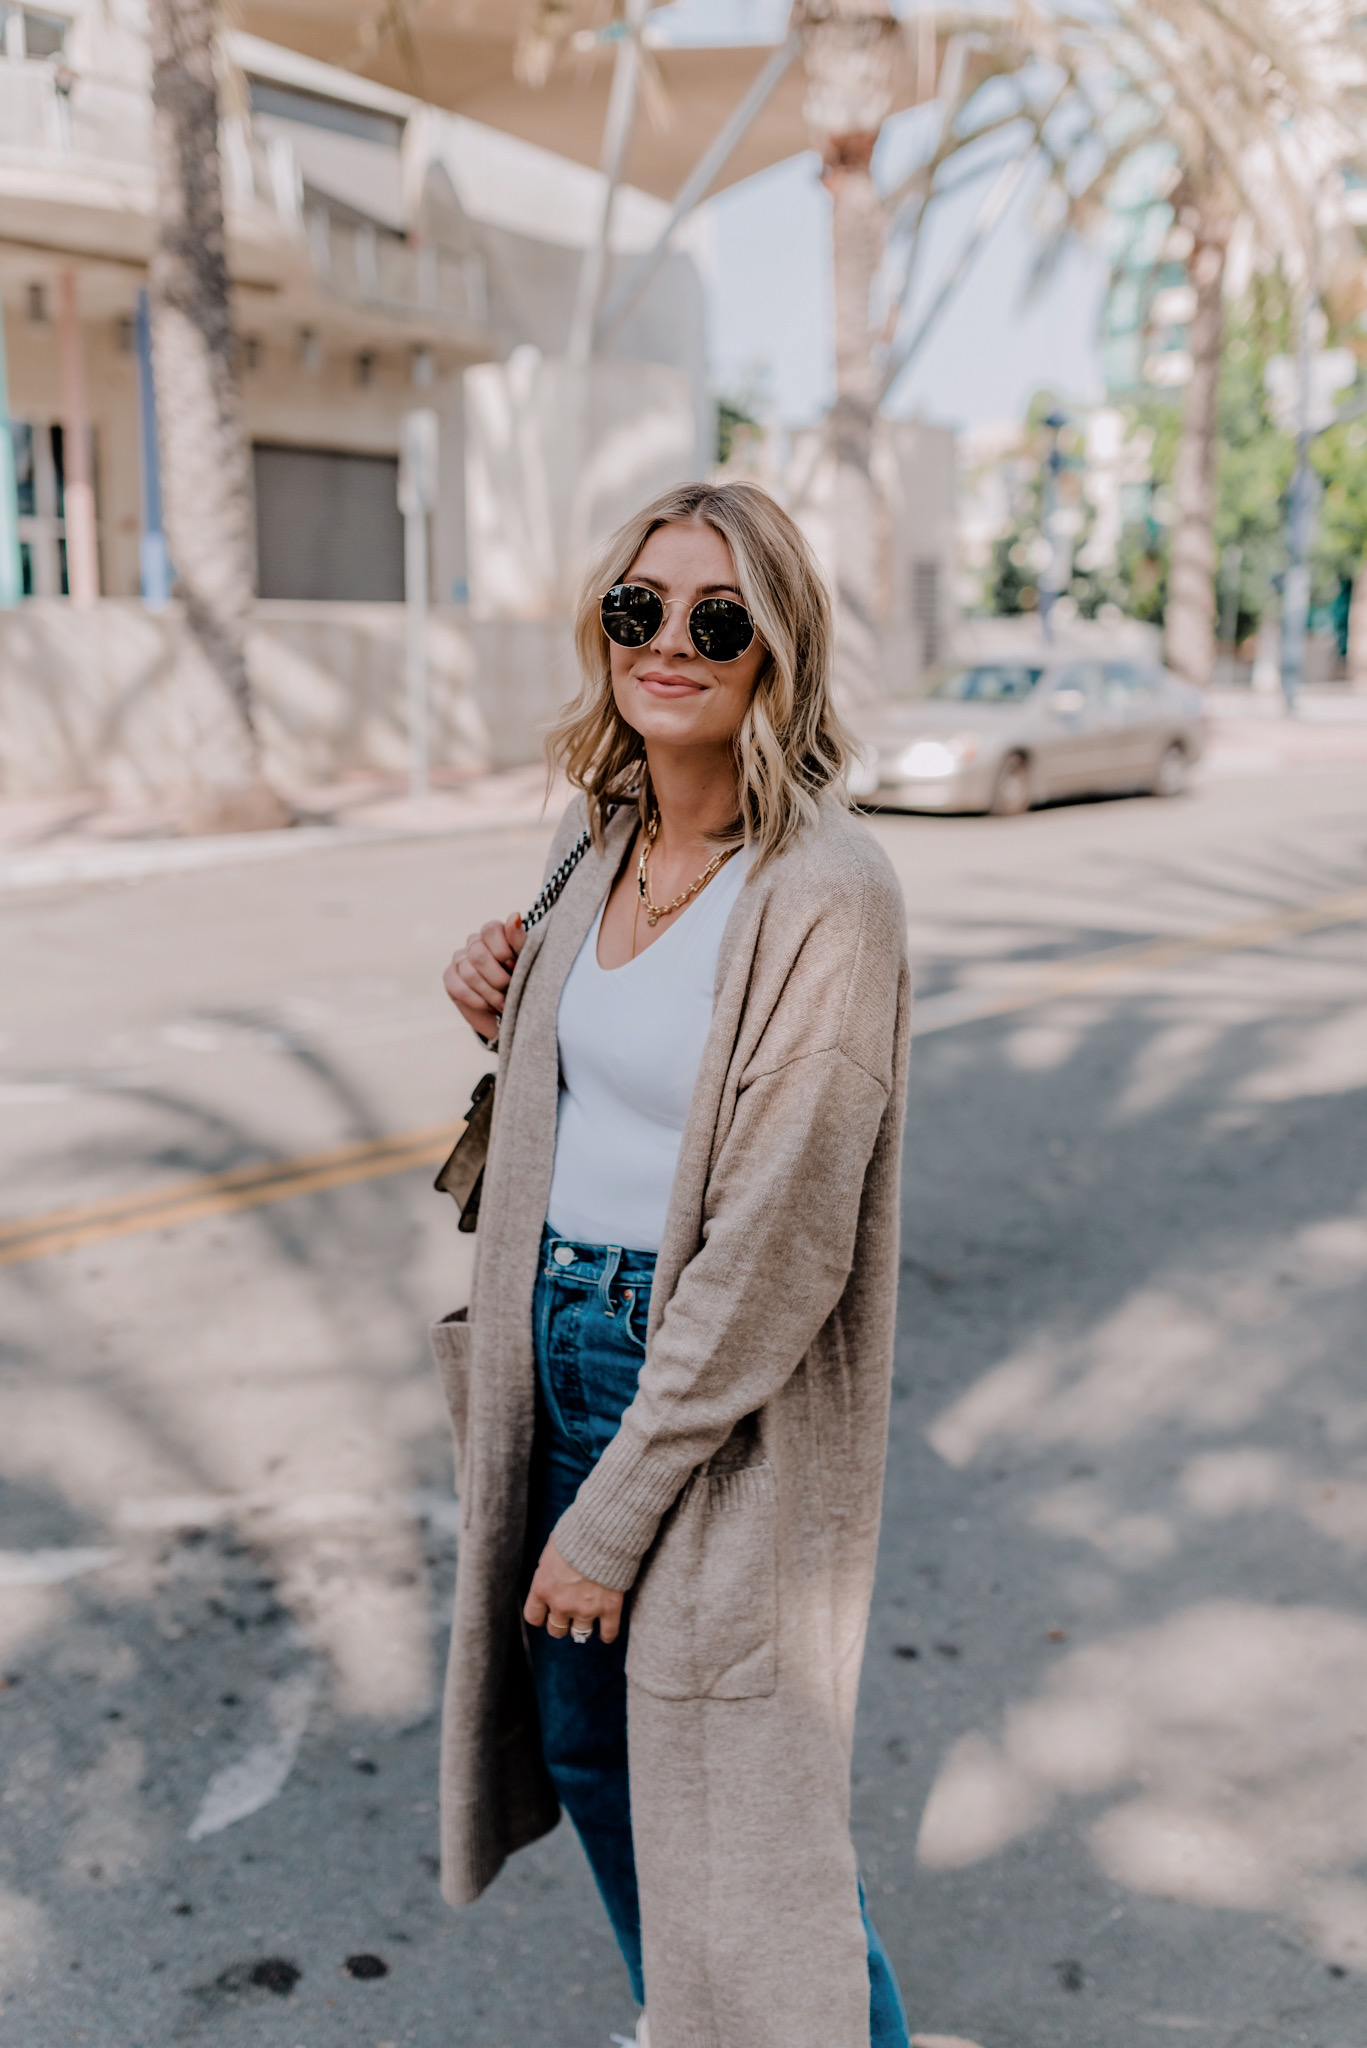 Long Cardigans by popular San Diego fashion blog, Navy Grace: image of a woman walking down a street and wearing a H&M long cardigan, Levi's Ribcage Ripped High Waist Ankle Straight Leg Jeans, Everlane The Long-Sleeve V-Neck Bodysuit, and Converse High Top Sneakers.